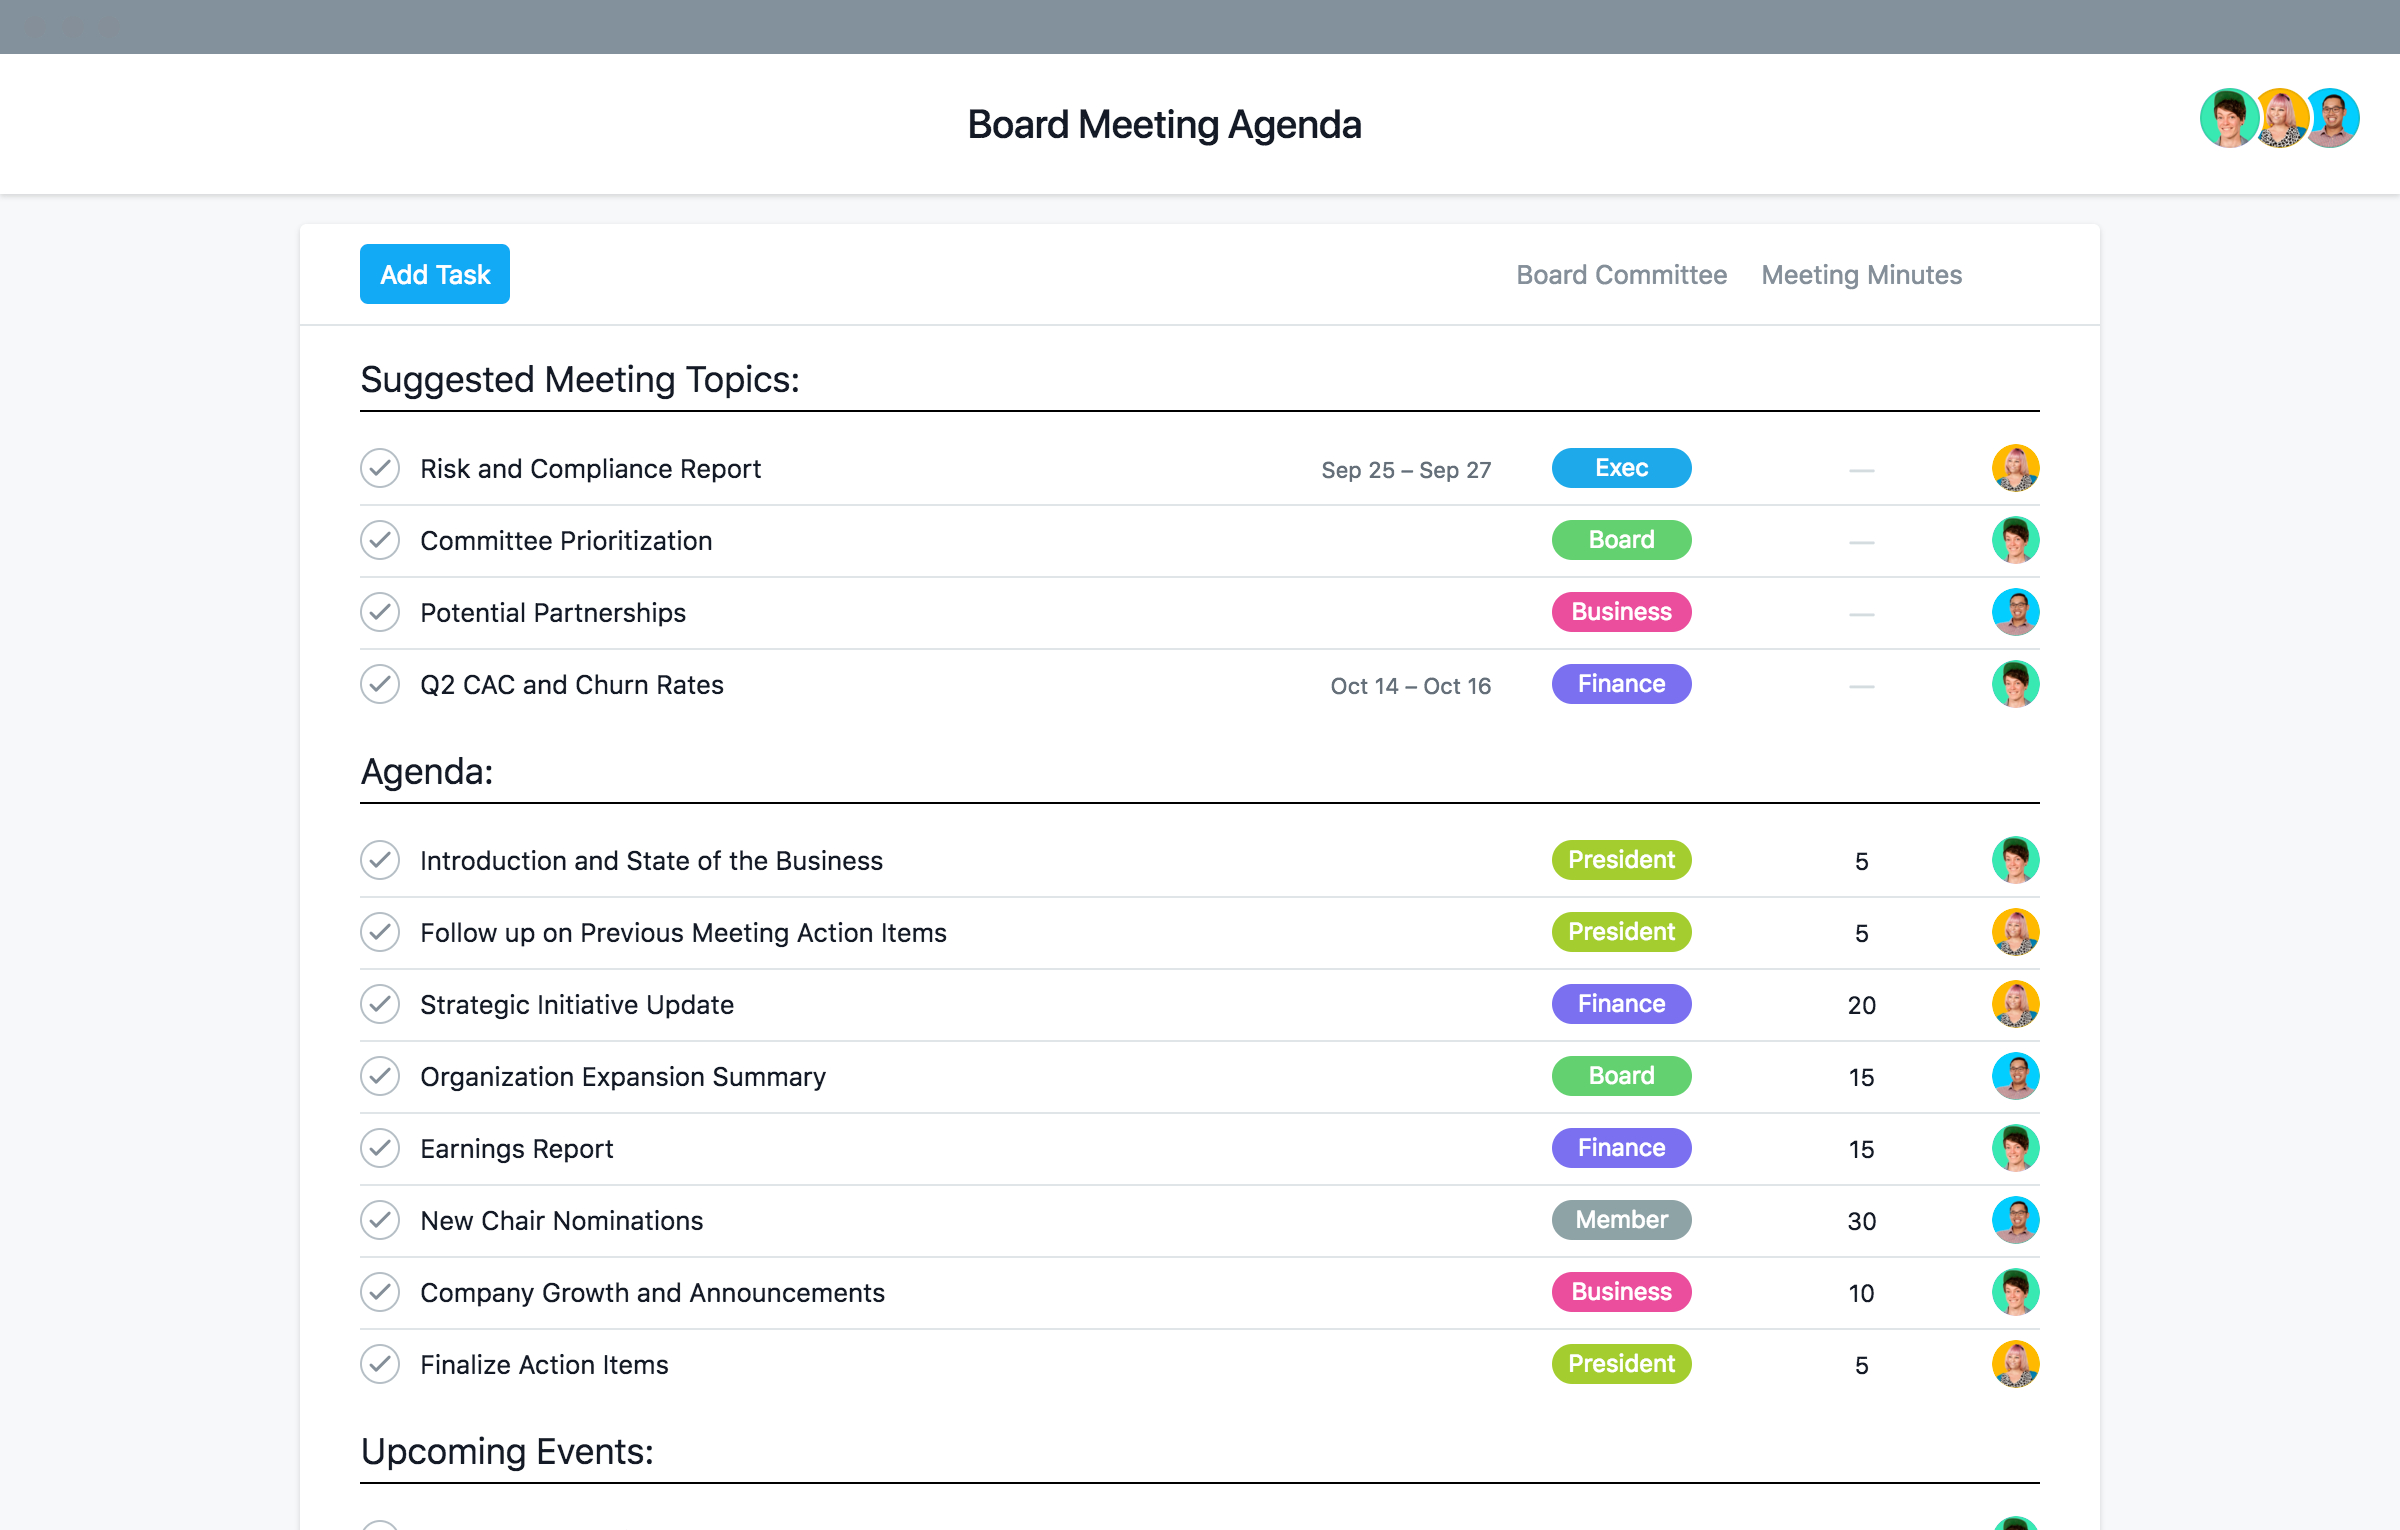 Nonprofit Board Meeting Agenda Template And Best Practices With Regard To Nonprofit Board Meeting Agenda Template